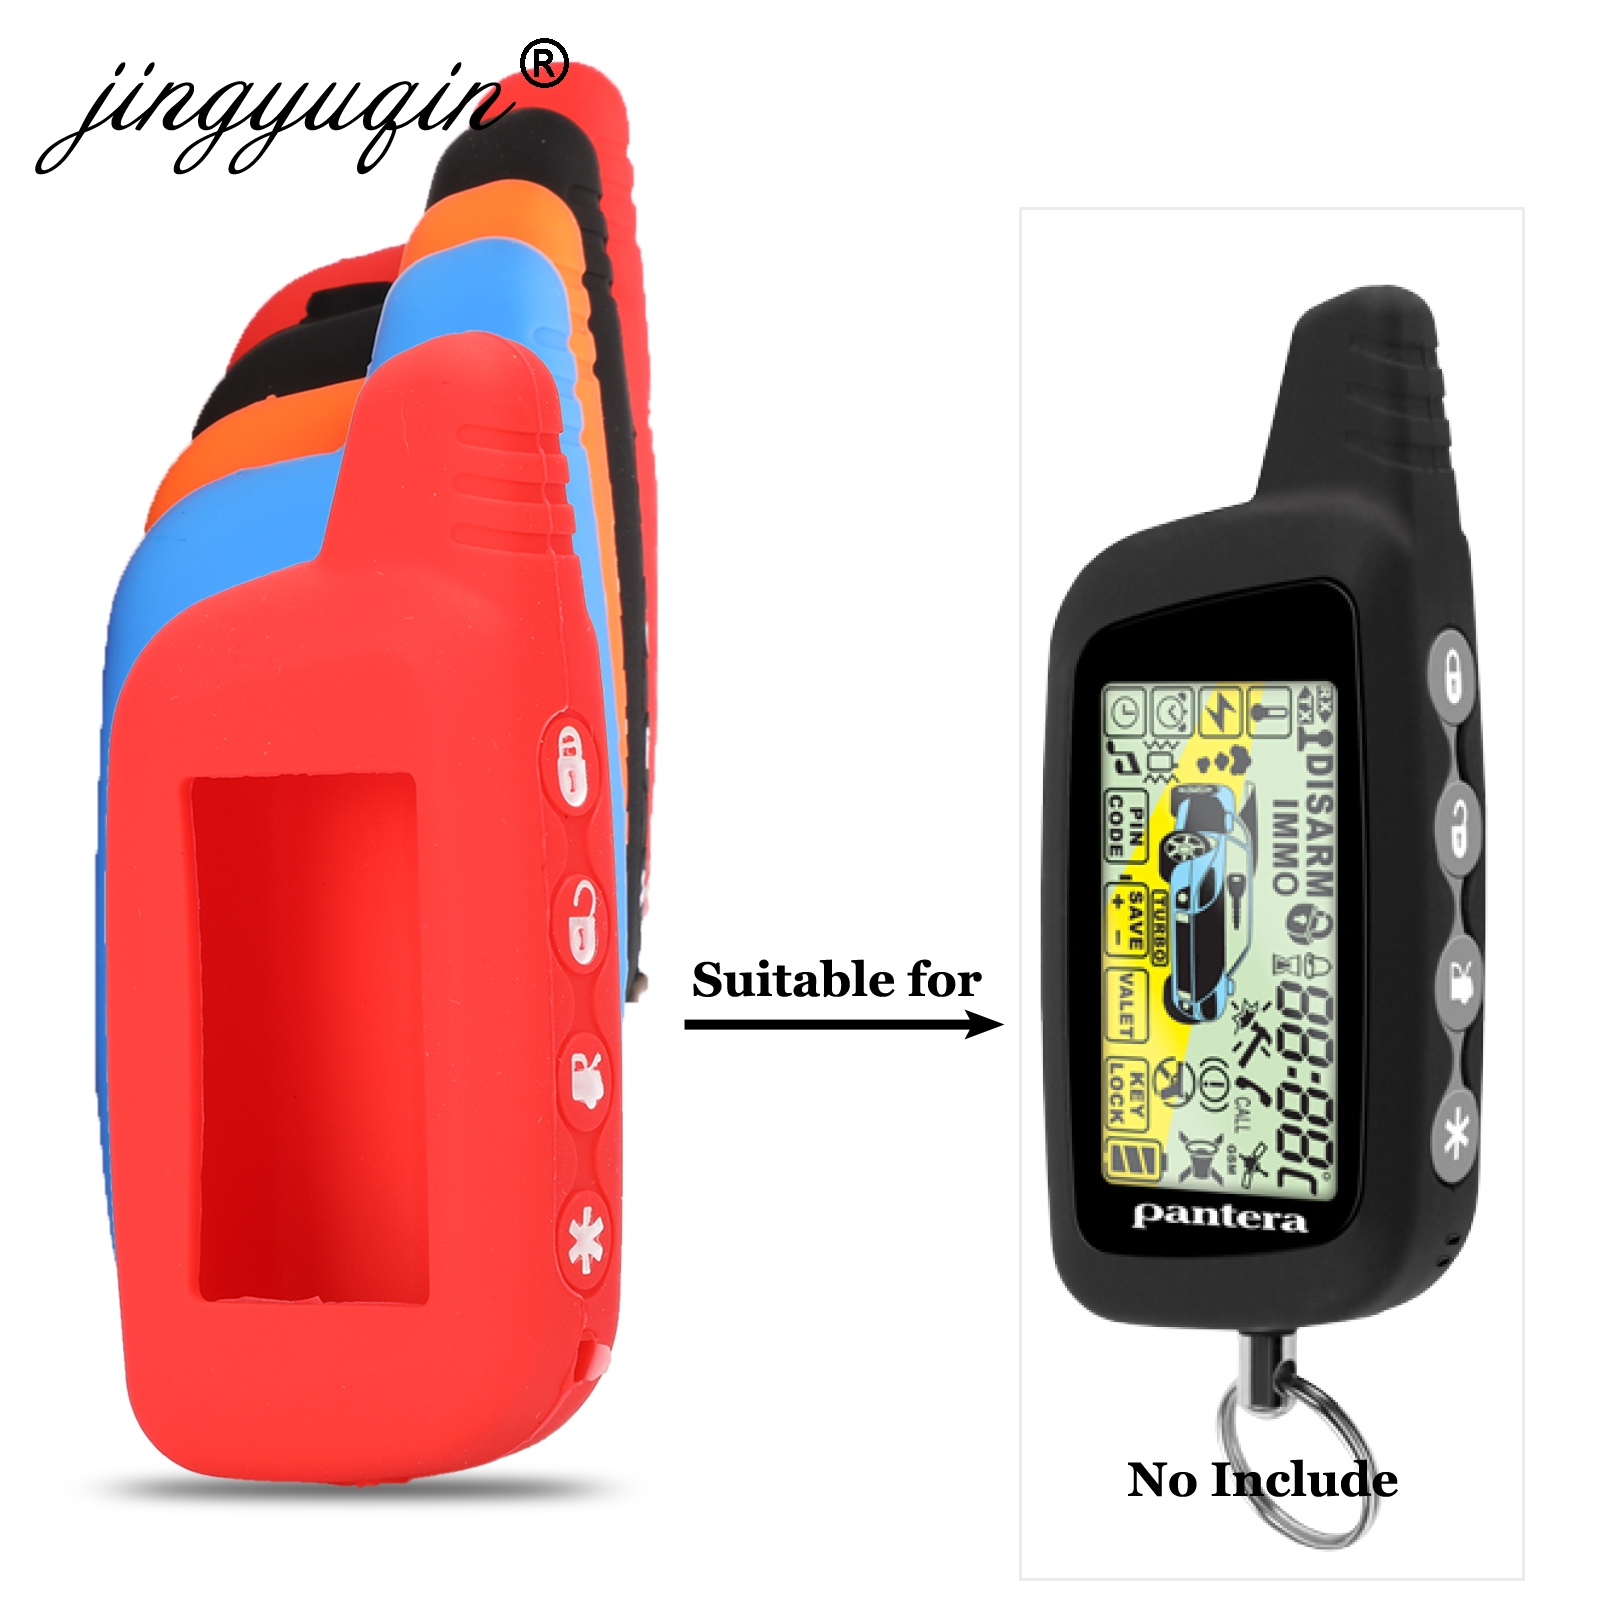 Silicone Case For Pantera SLK 300 350 400 450 600RS 625RS 650RS 675RS 775RS 2 Way Car Alarm LCD Keychain Remote Control Cover Key Case for Car     - title=